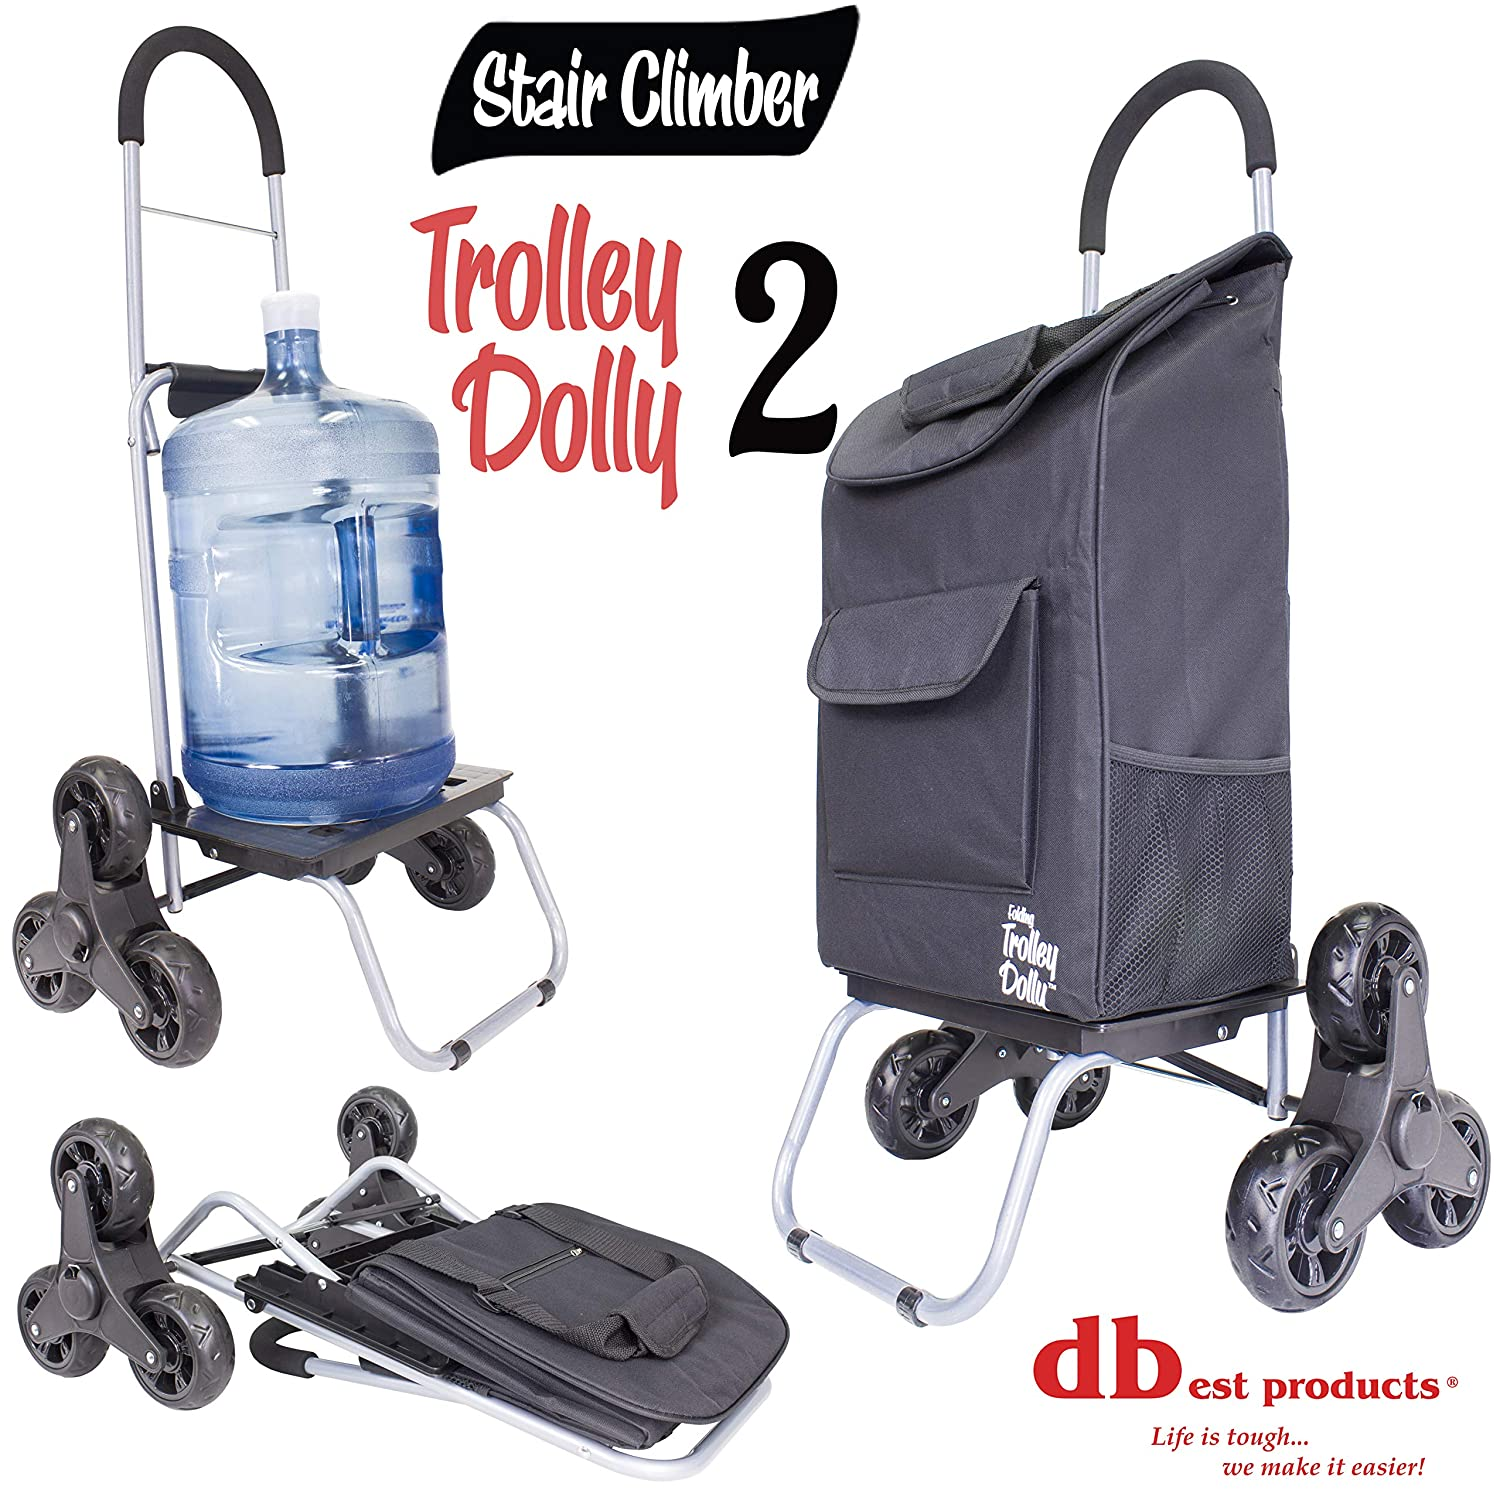 Black Grocery Foldable Cart Condo Apartment Stair Climber Trolley Dolly 2